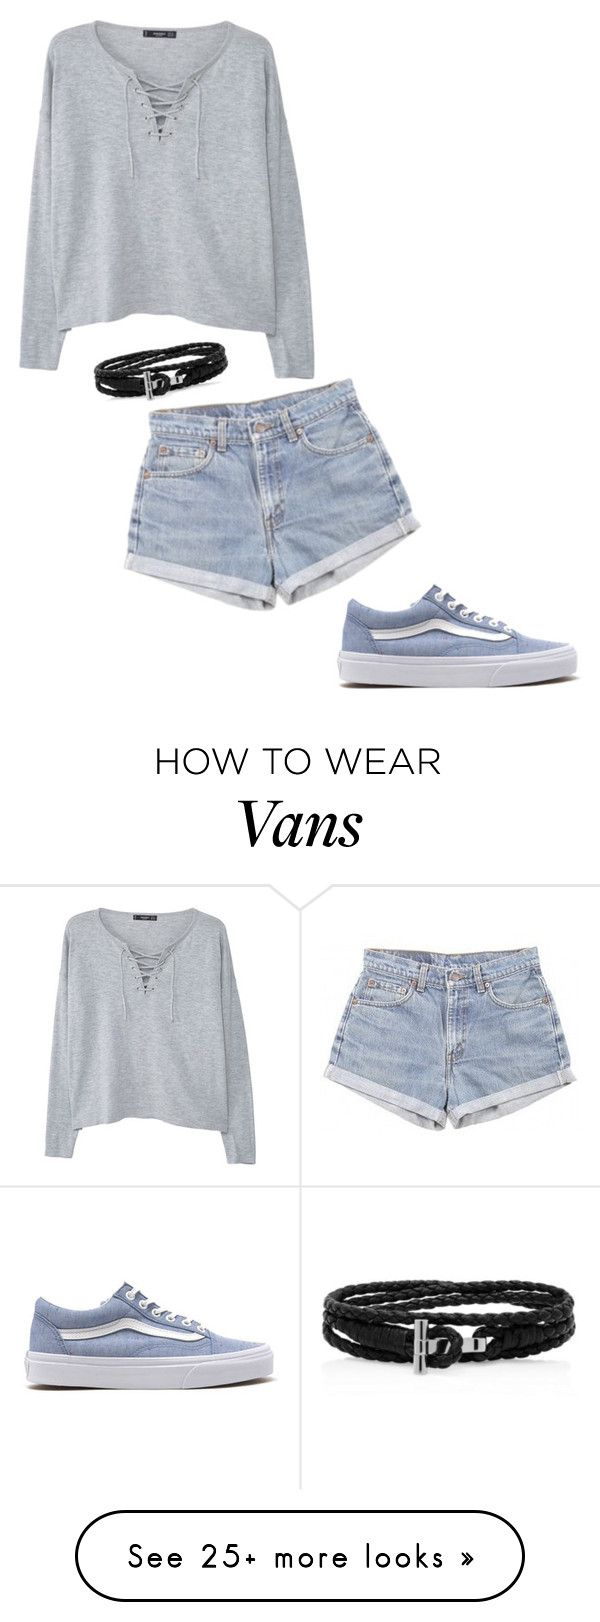 """."" by marsophie on Polyvore featuring Vans, Levi's and MANGO"